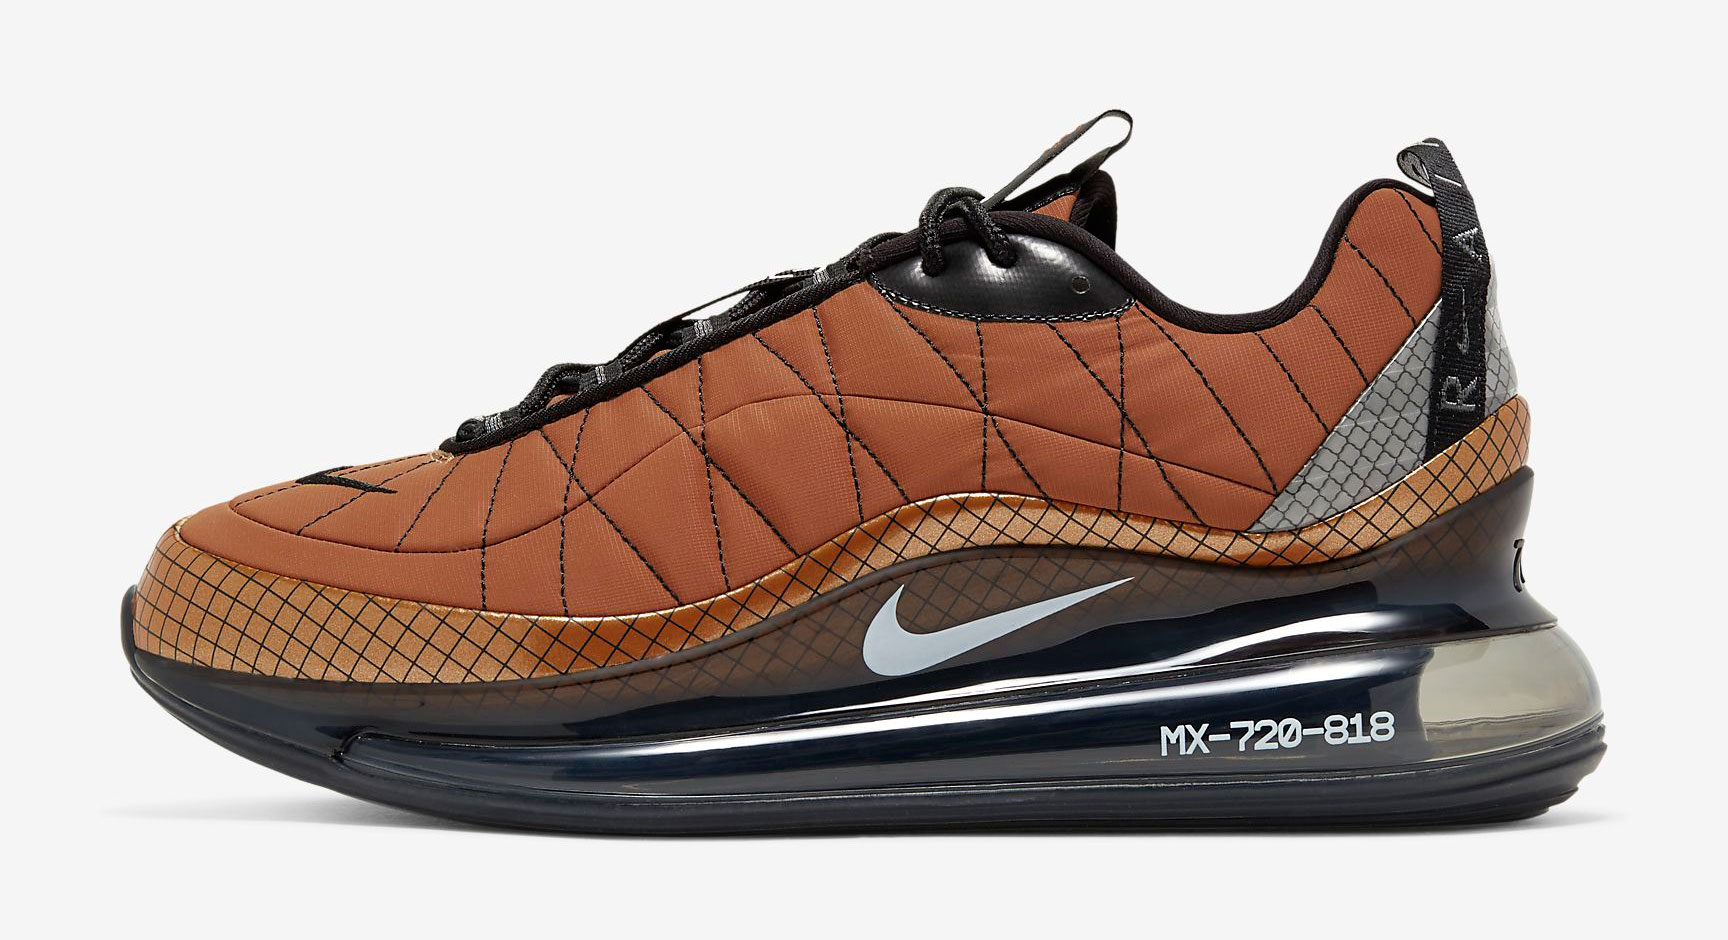 nike-mx-720-818-metallic-copper-release-date